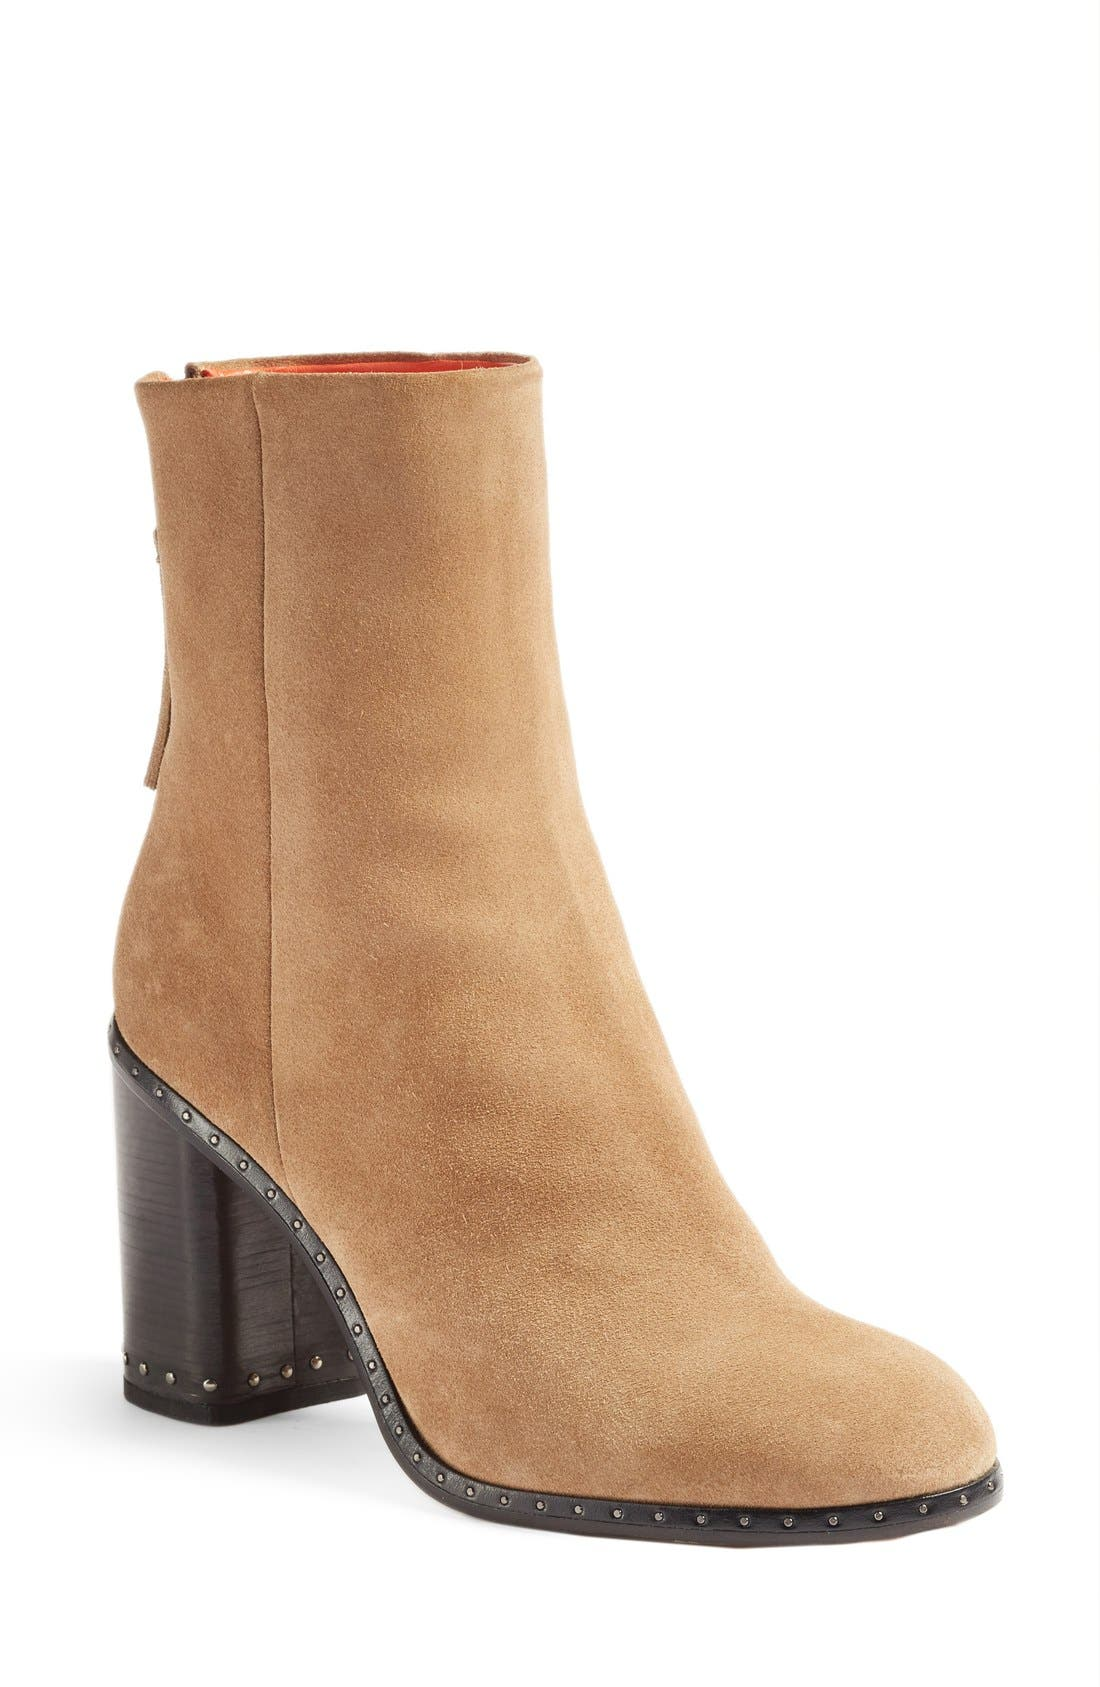 Alternate Image 1 Selected - rag & bone Blyth Bootie (Women)